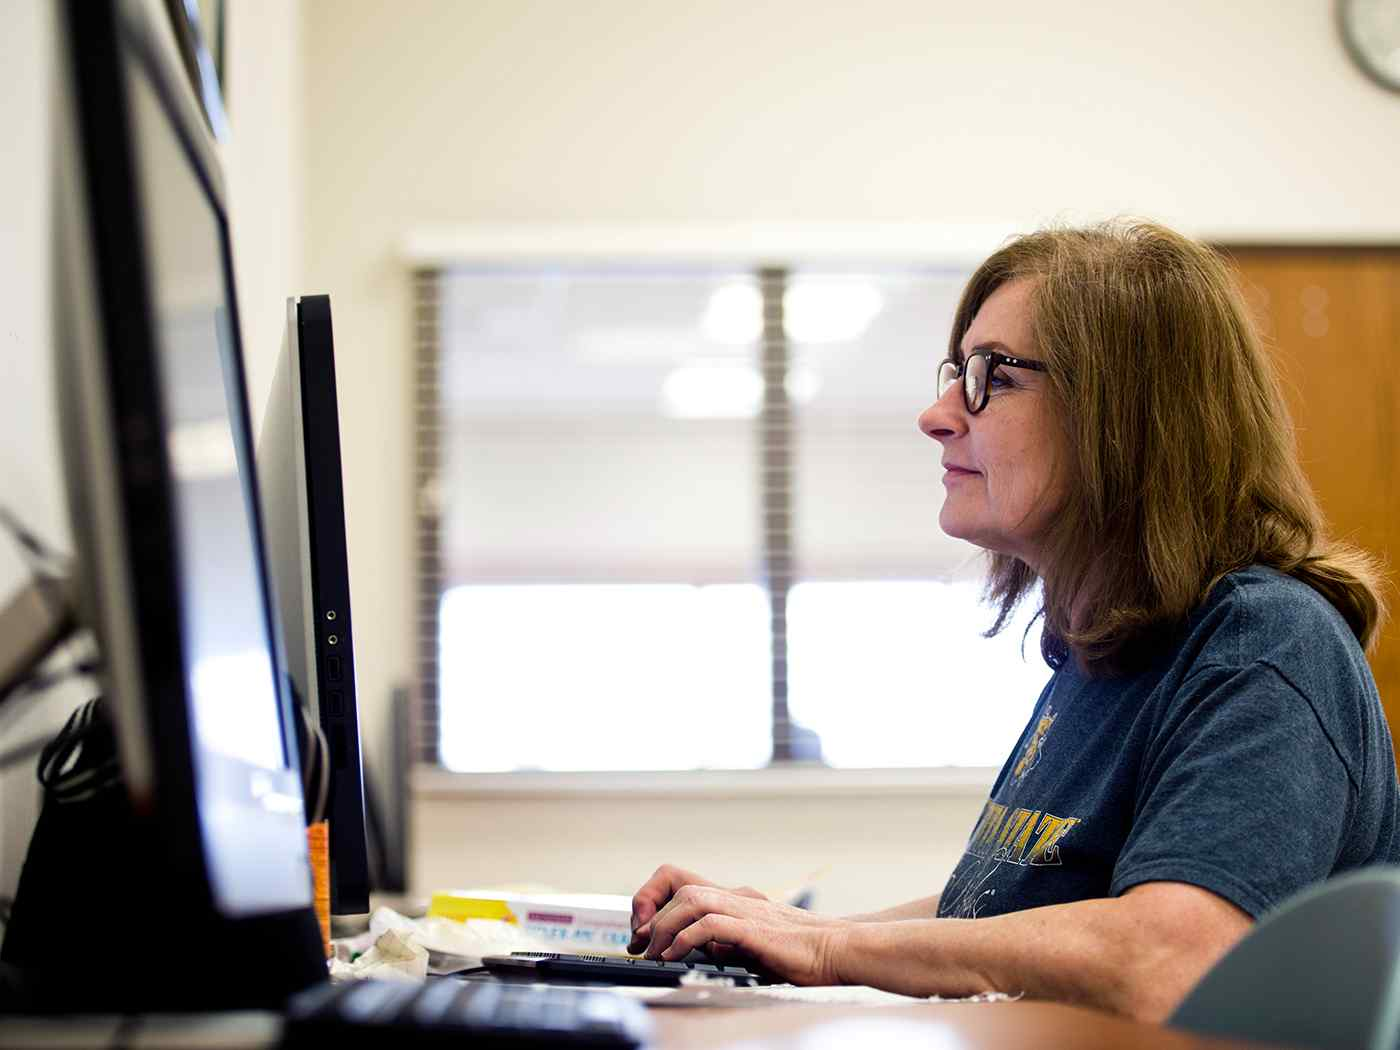 Adult learner completing computer work